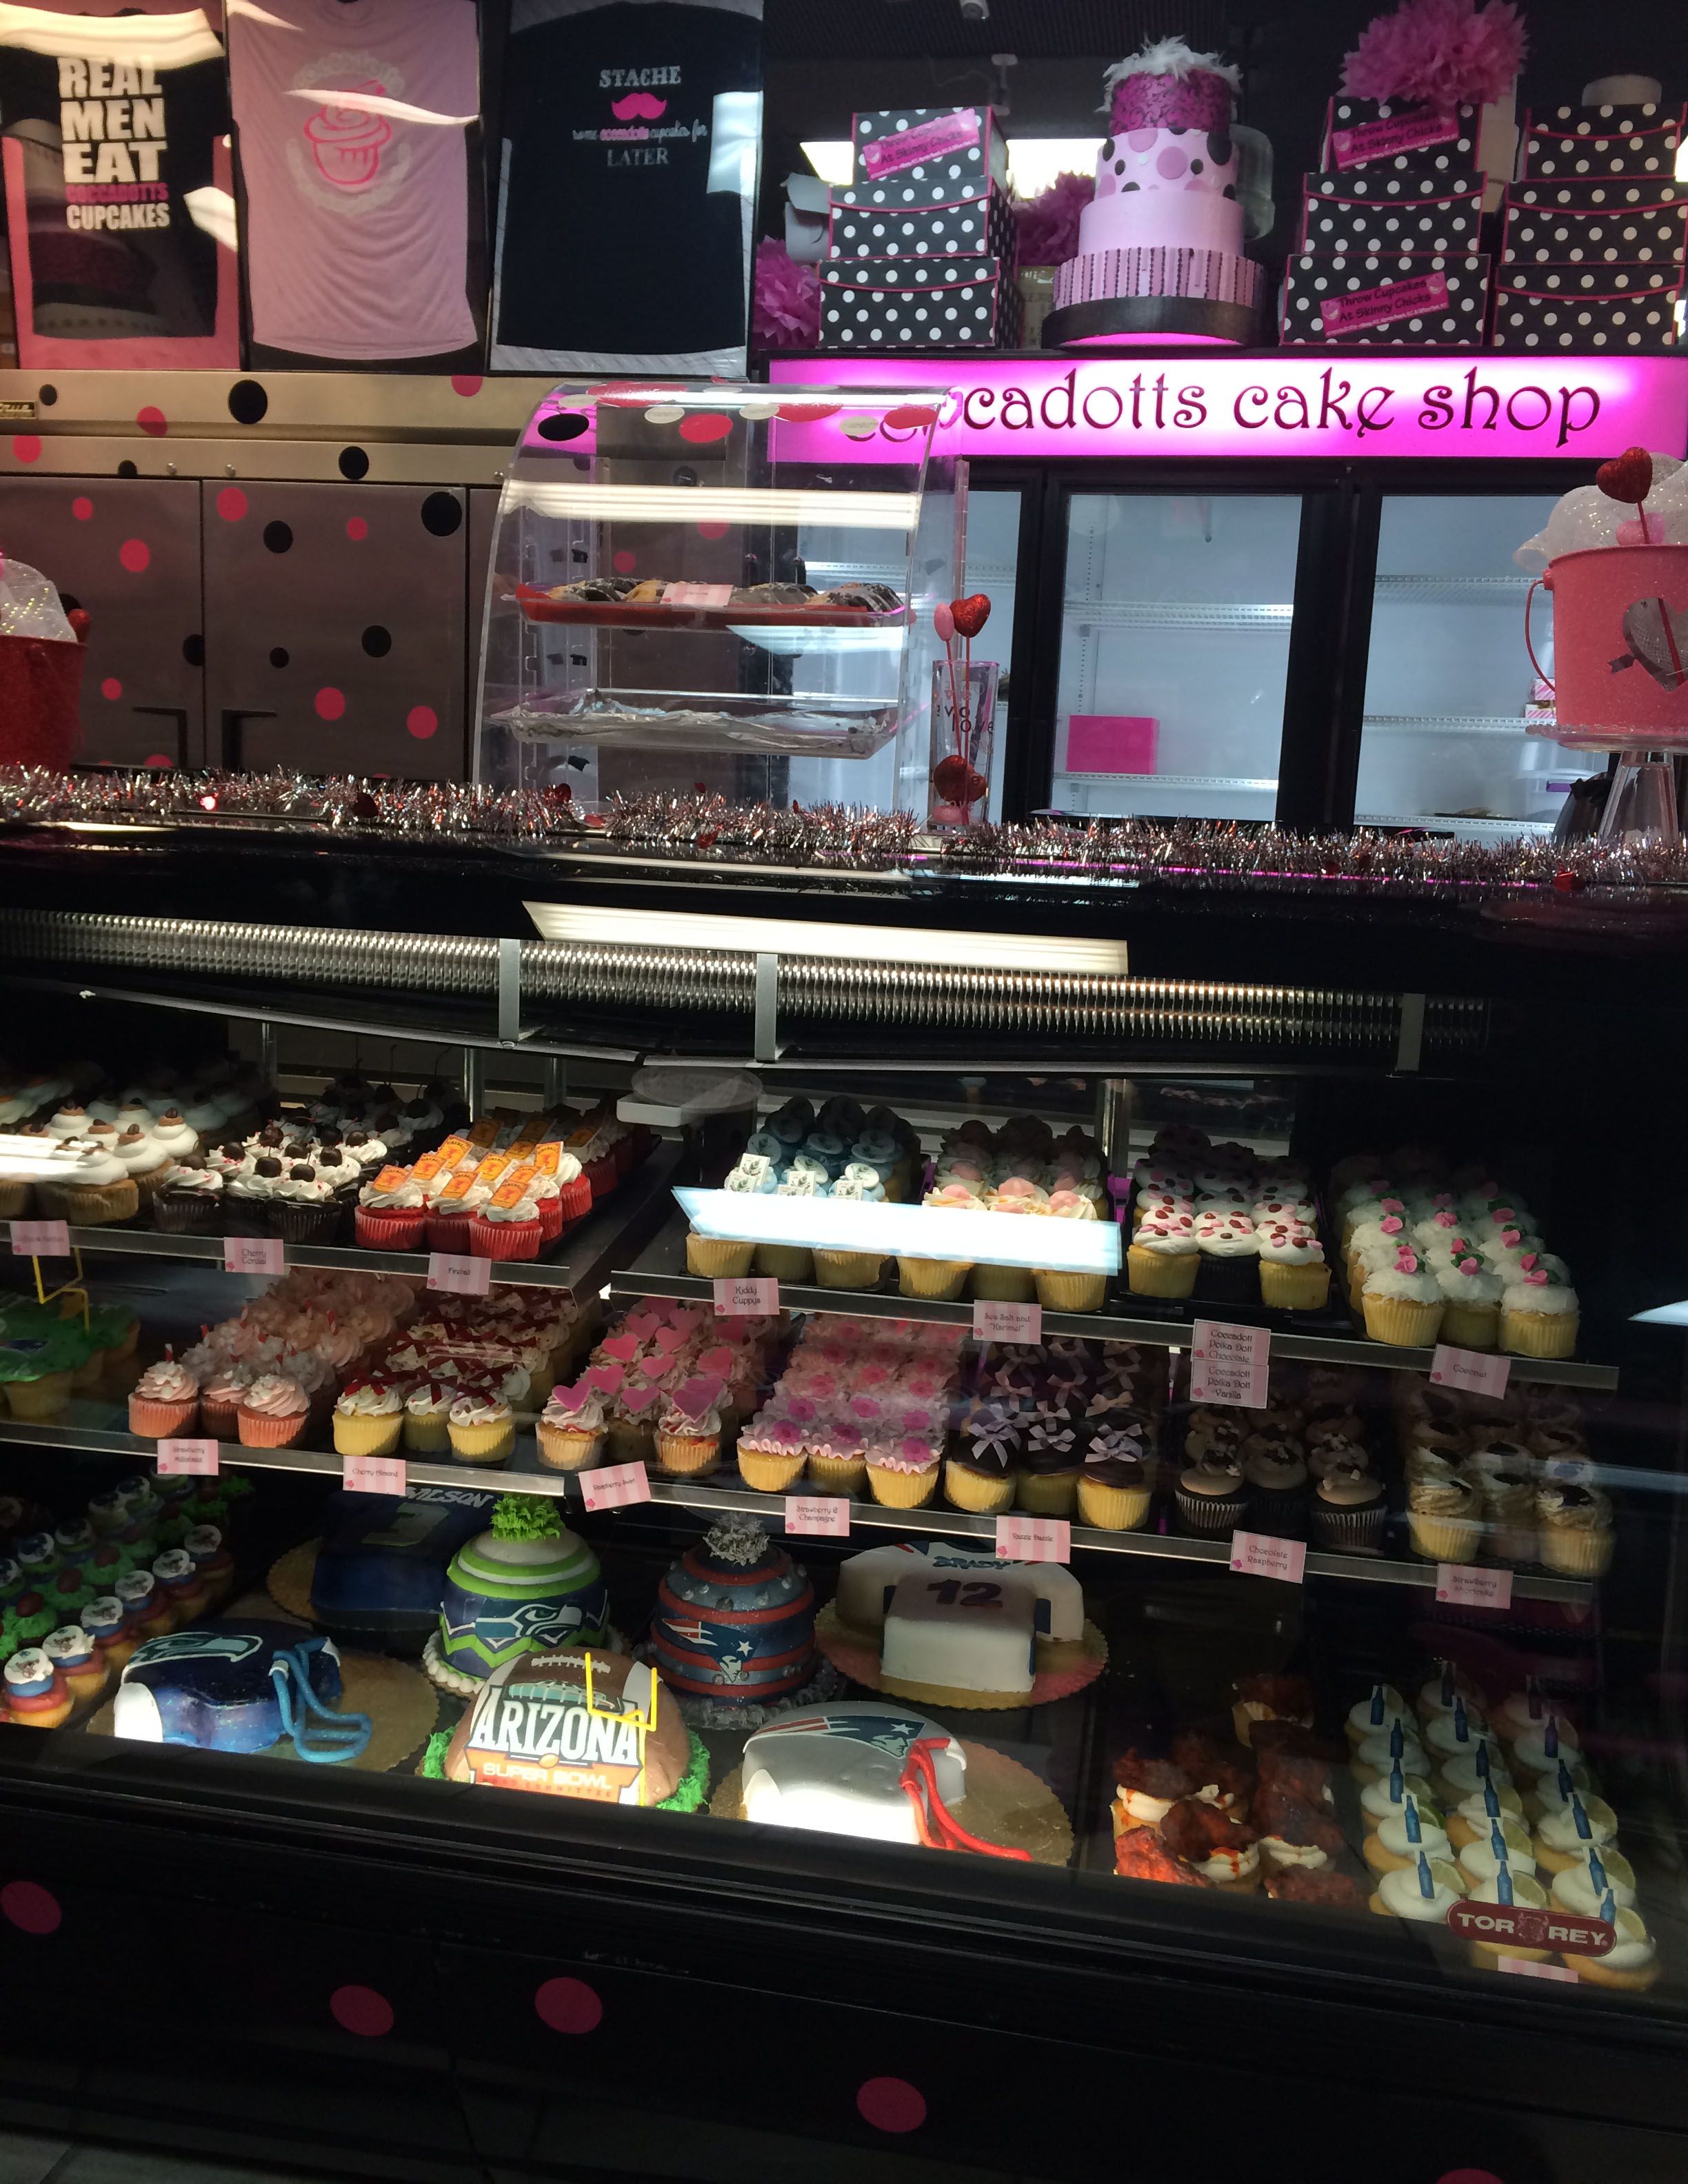 I went to Coccadotts Cake Shop in Myrtle Beach on Thursday night to get a couple specialty cupcakes. It is very nice inside the store.